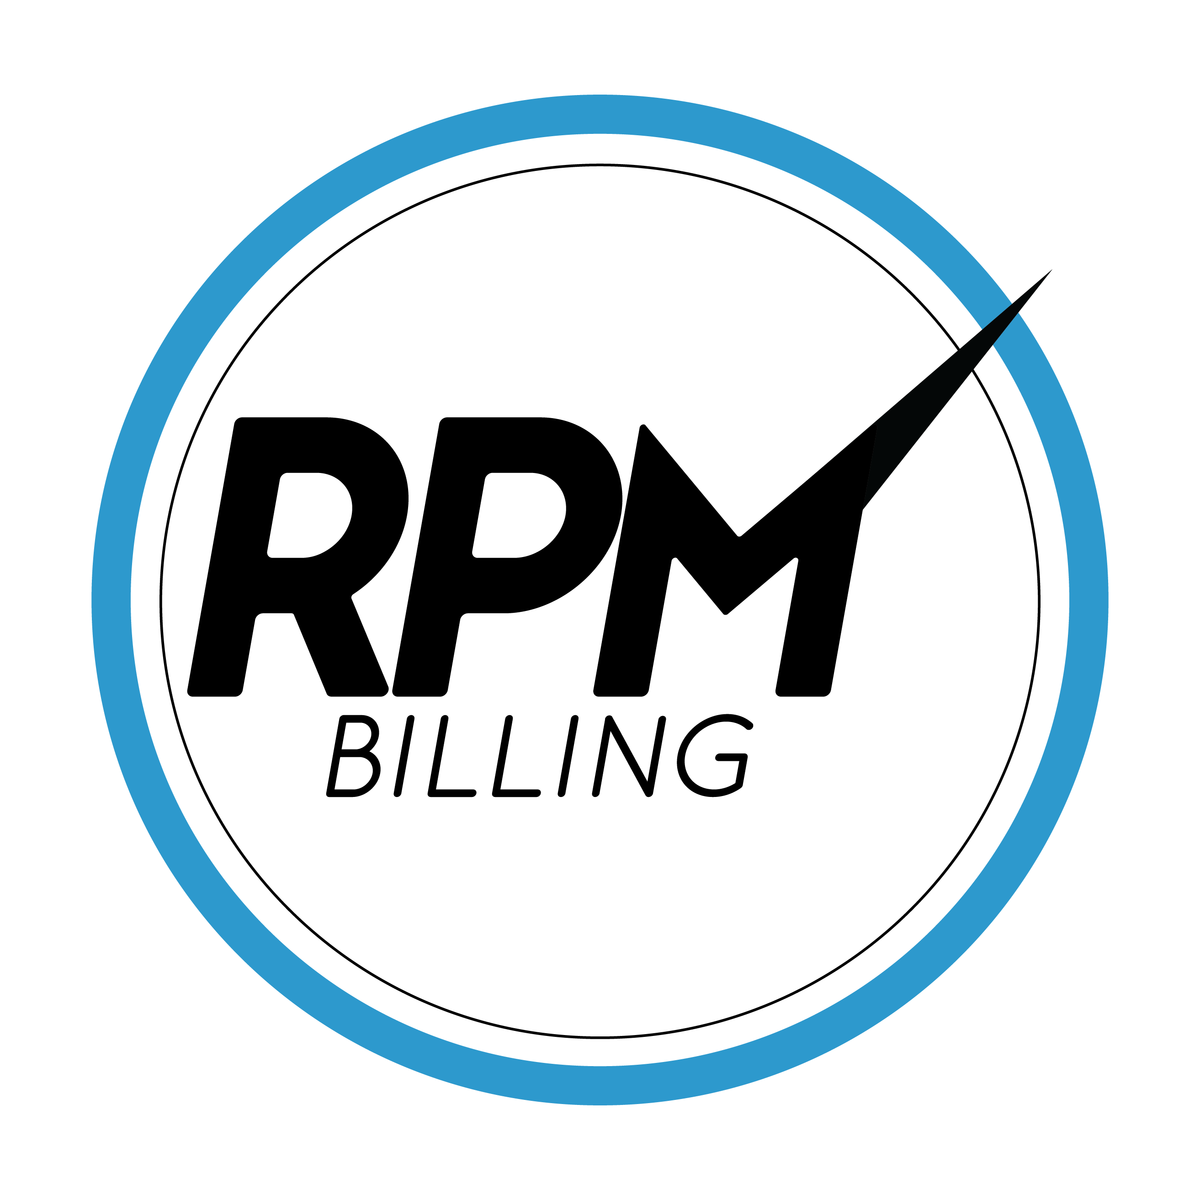 rpm-billing-llc-washoe-county-medical-society.png